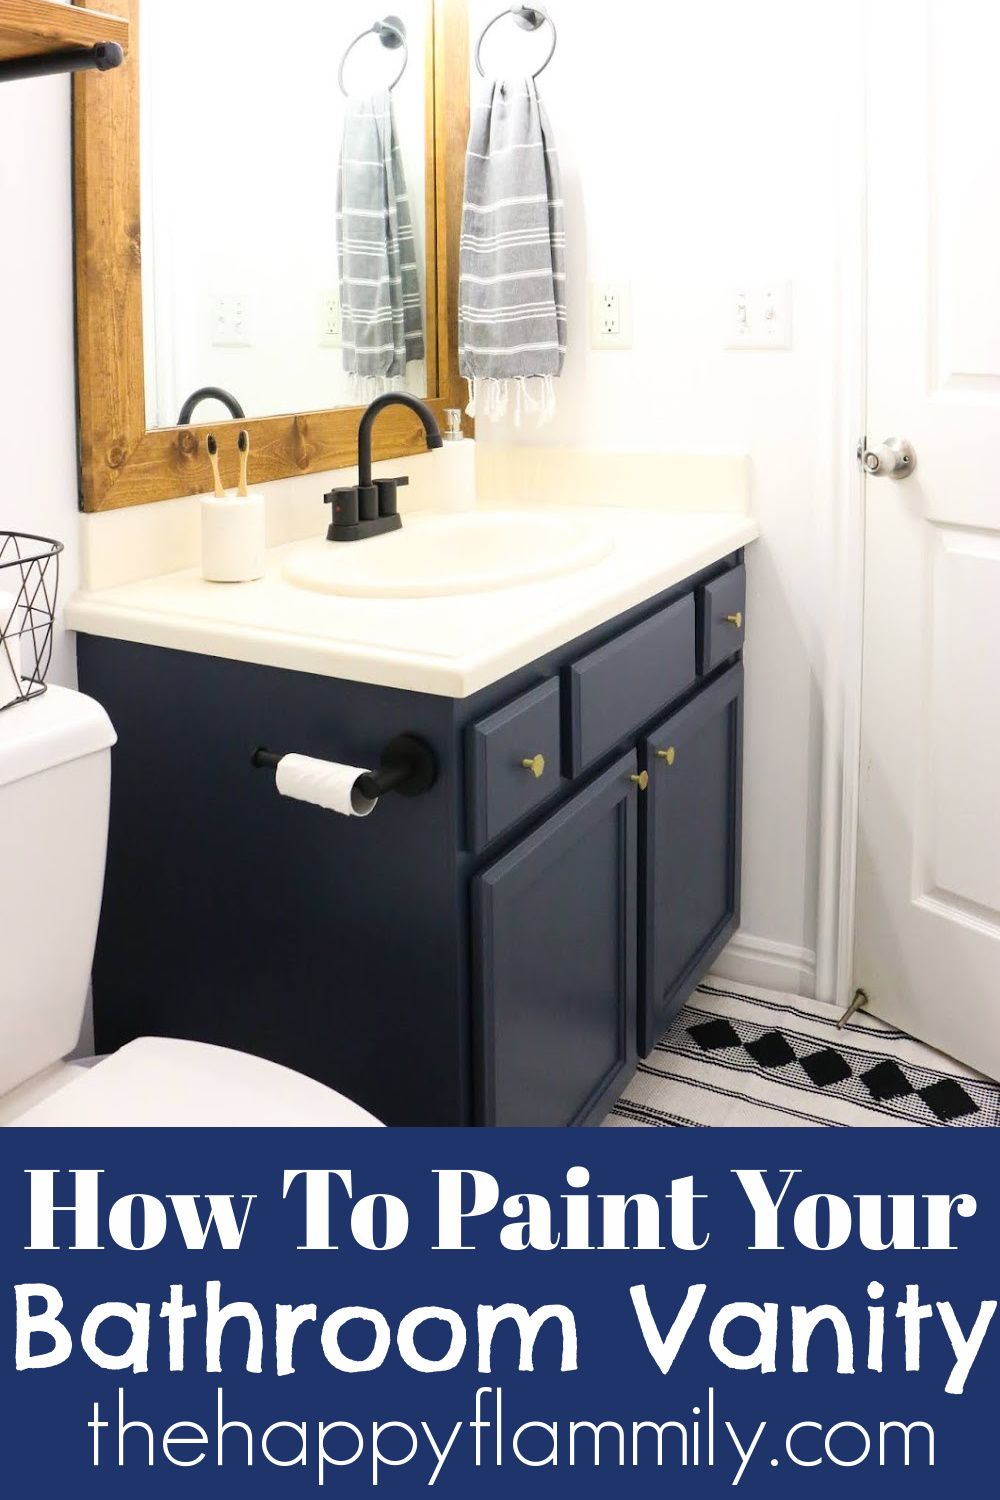 34+ How to paint a bathroom vanity without sanding model